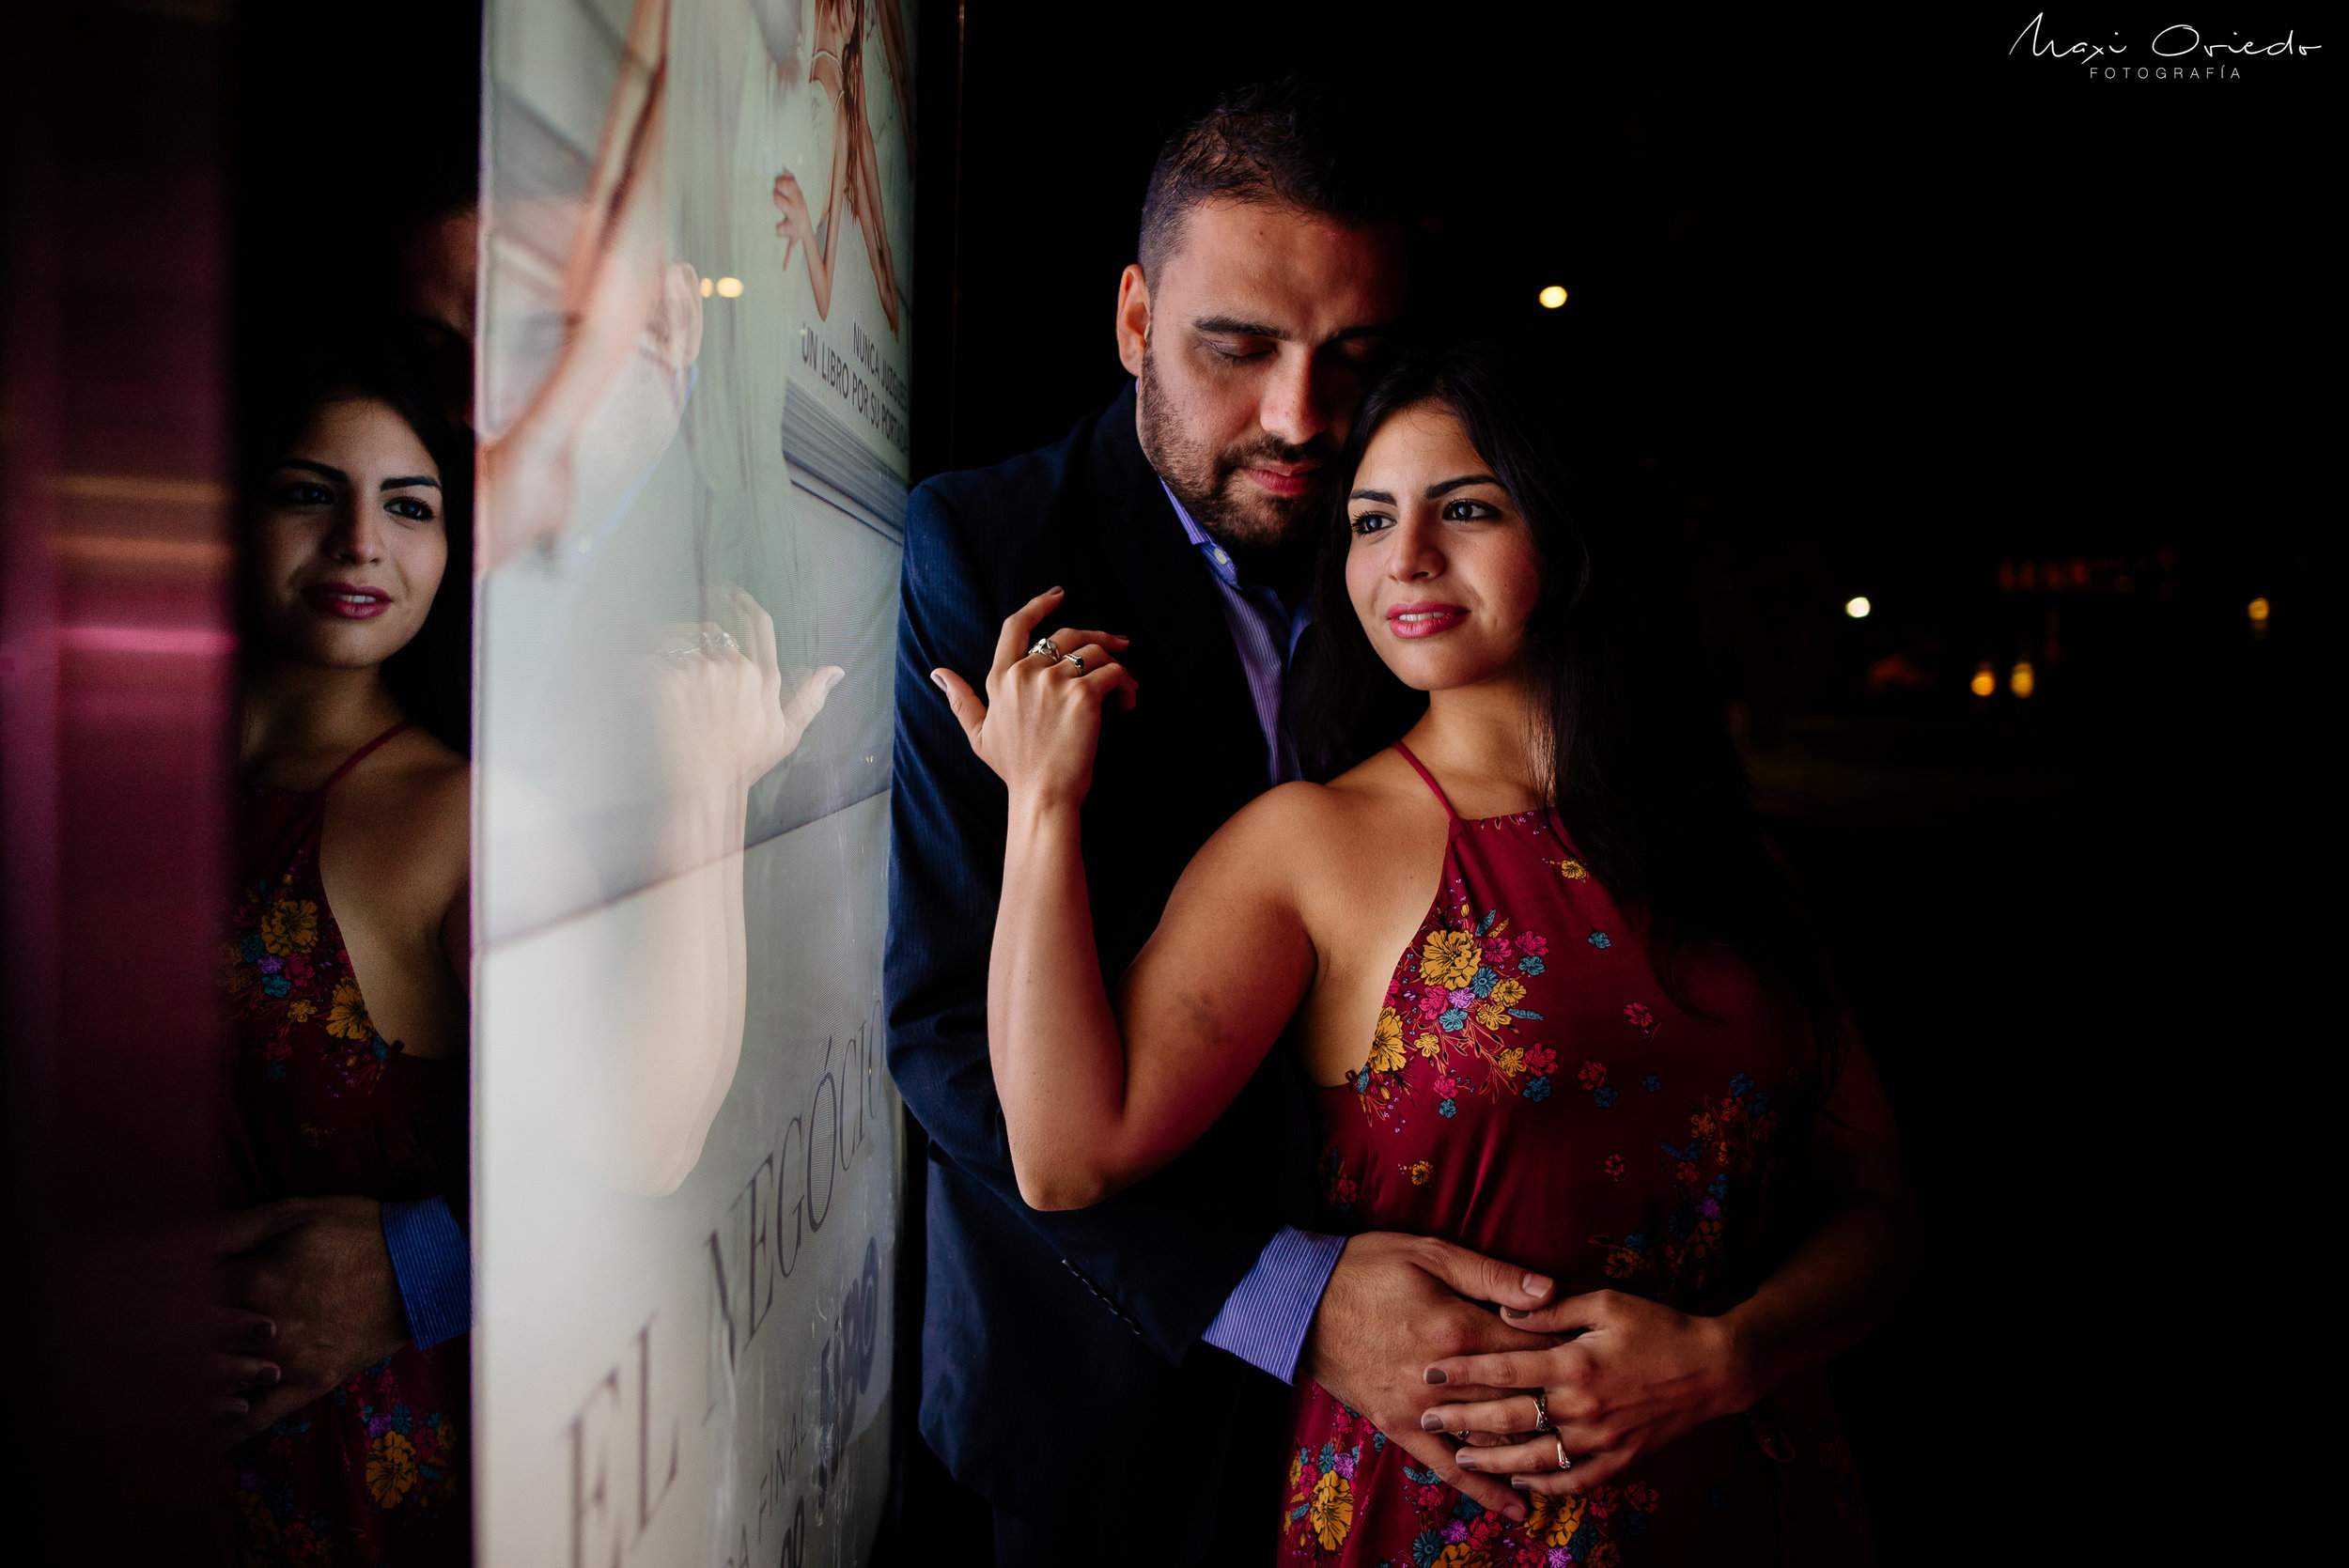 SESION PRE BODA CAPITAL FEDERAL